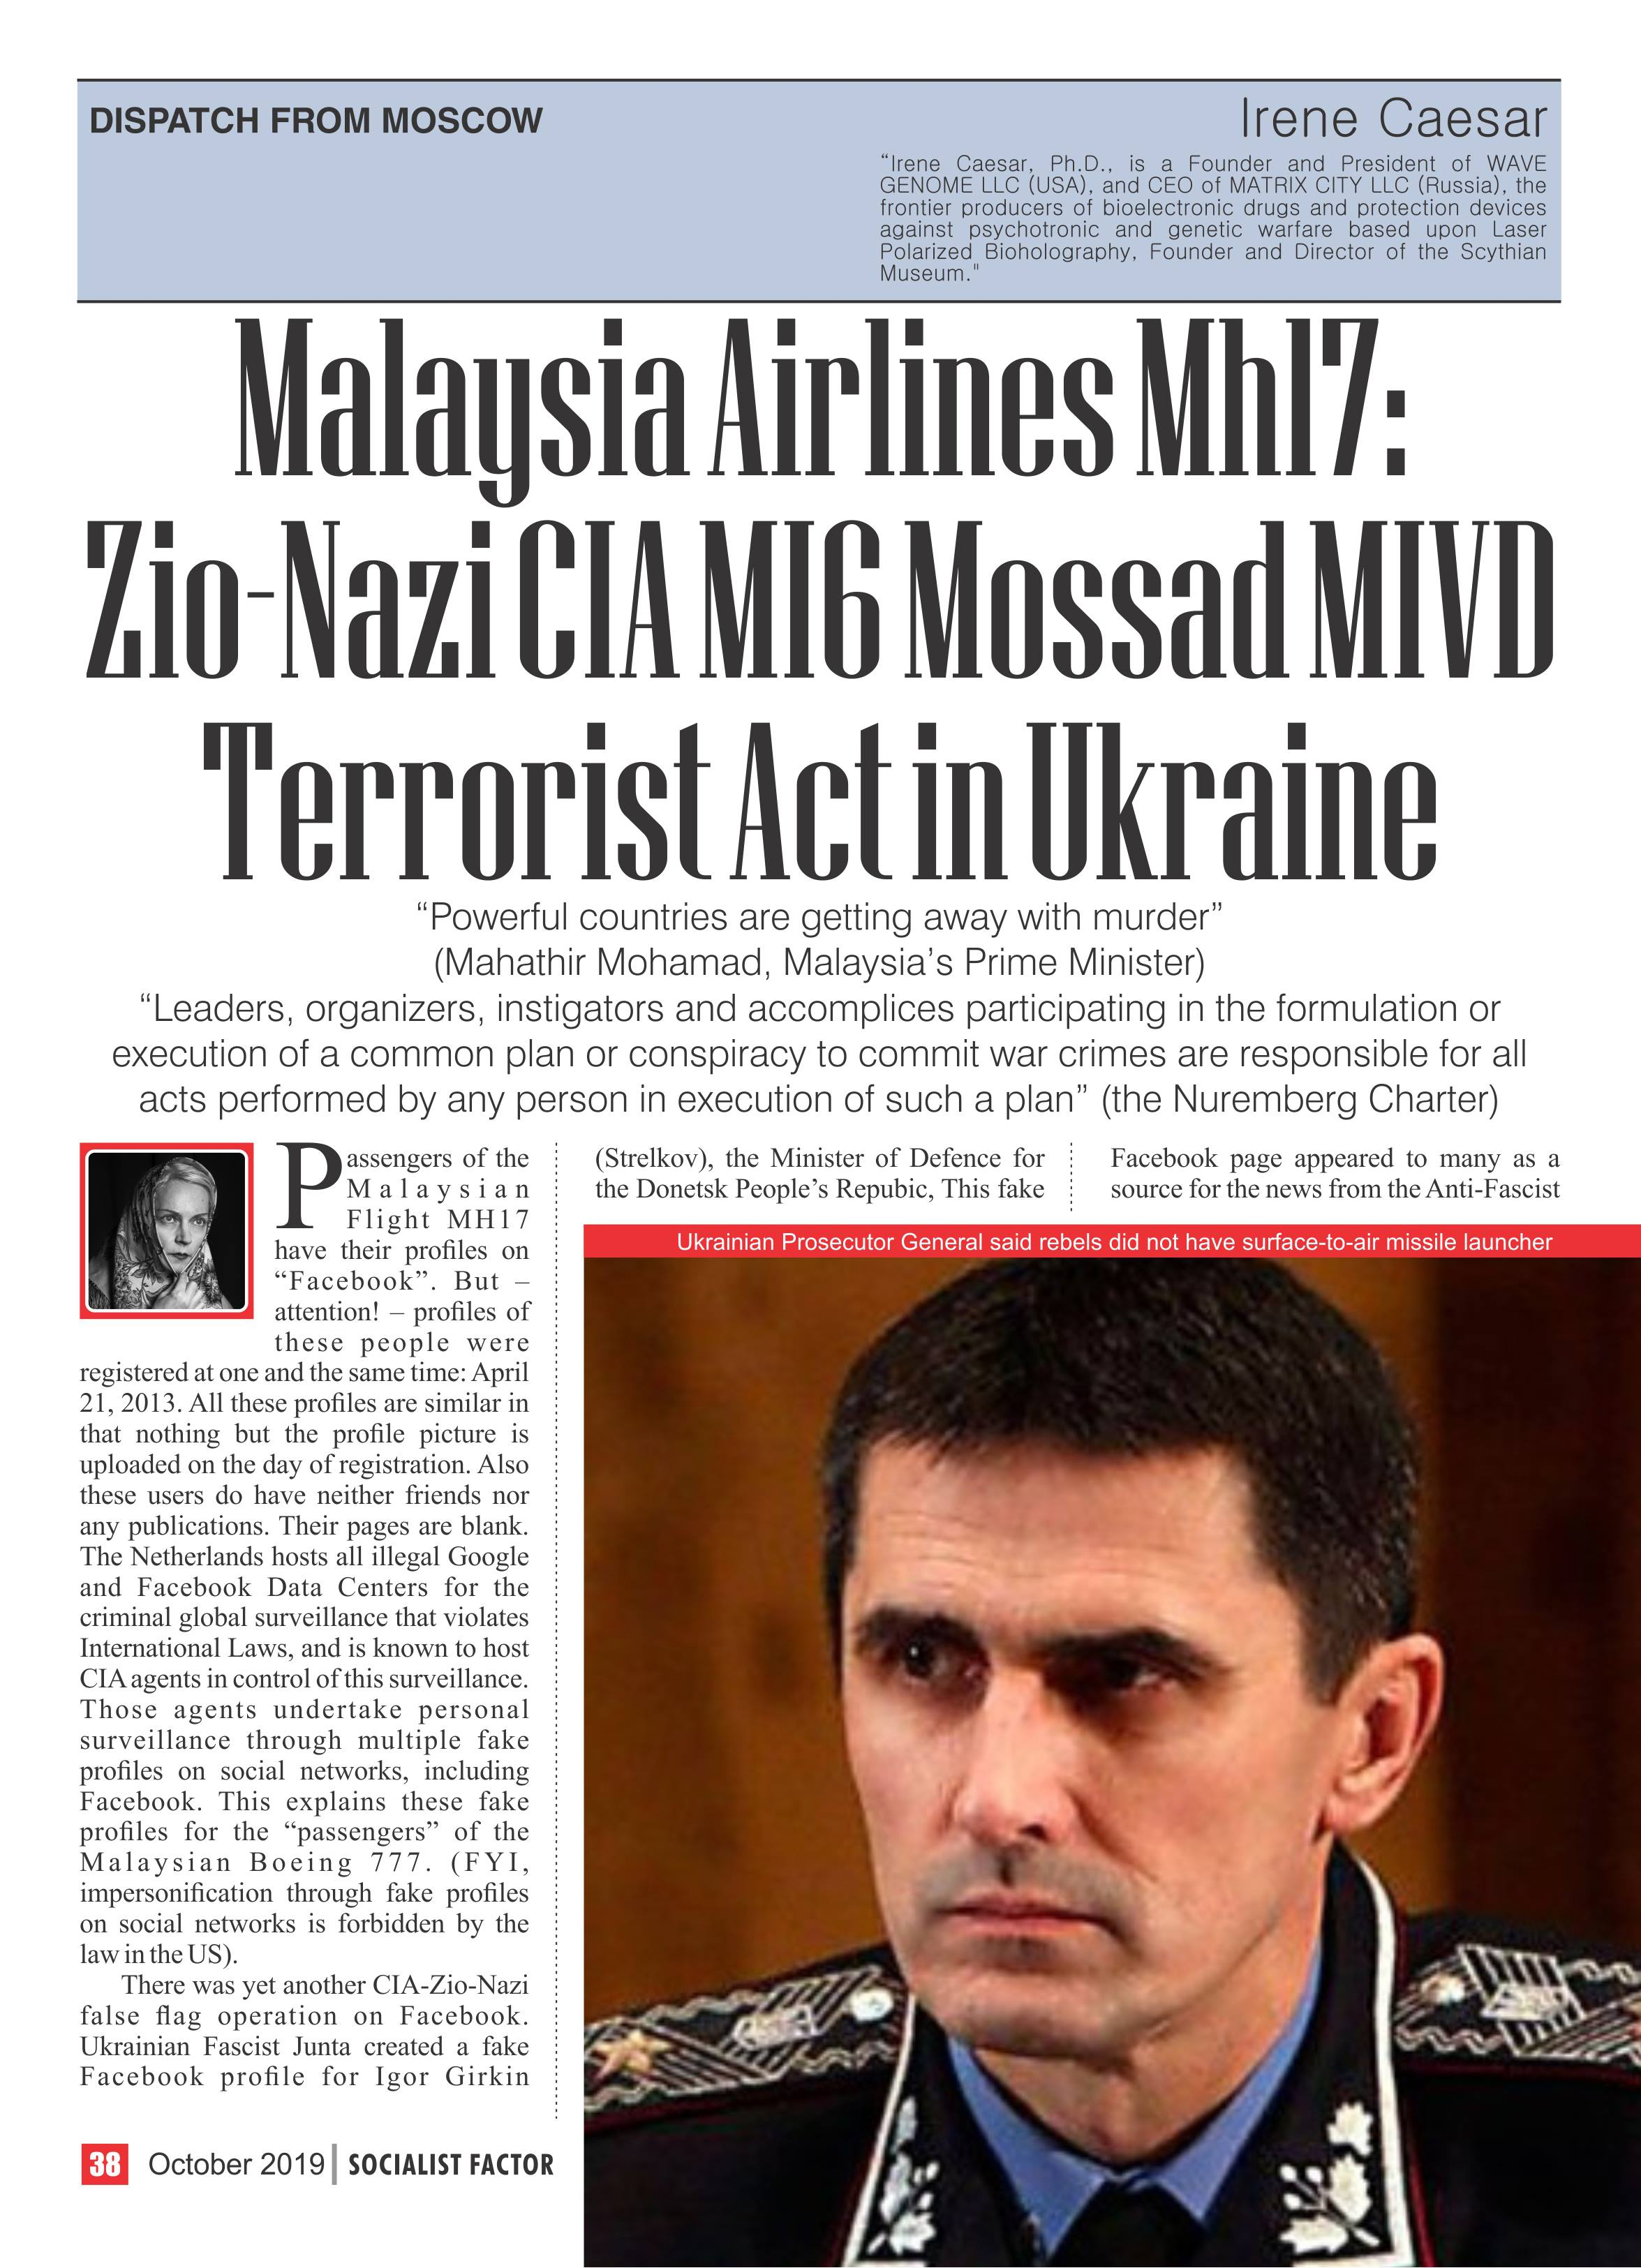 2019_10_IRENE_CAESAR_MALAYSIA_AIRLINES_MH17_SOCIALIST_FACTOR_PAGE_1